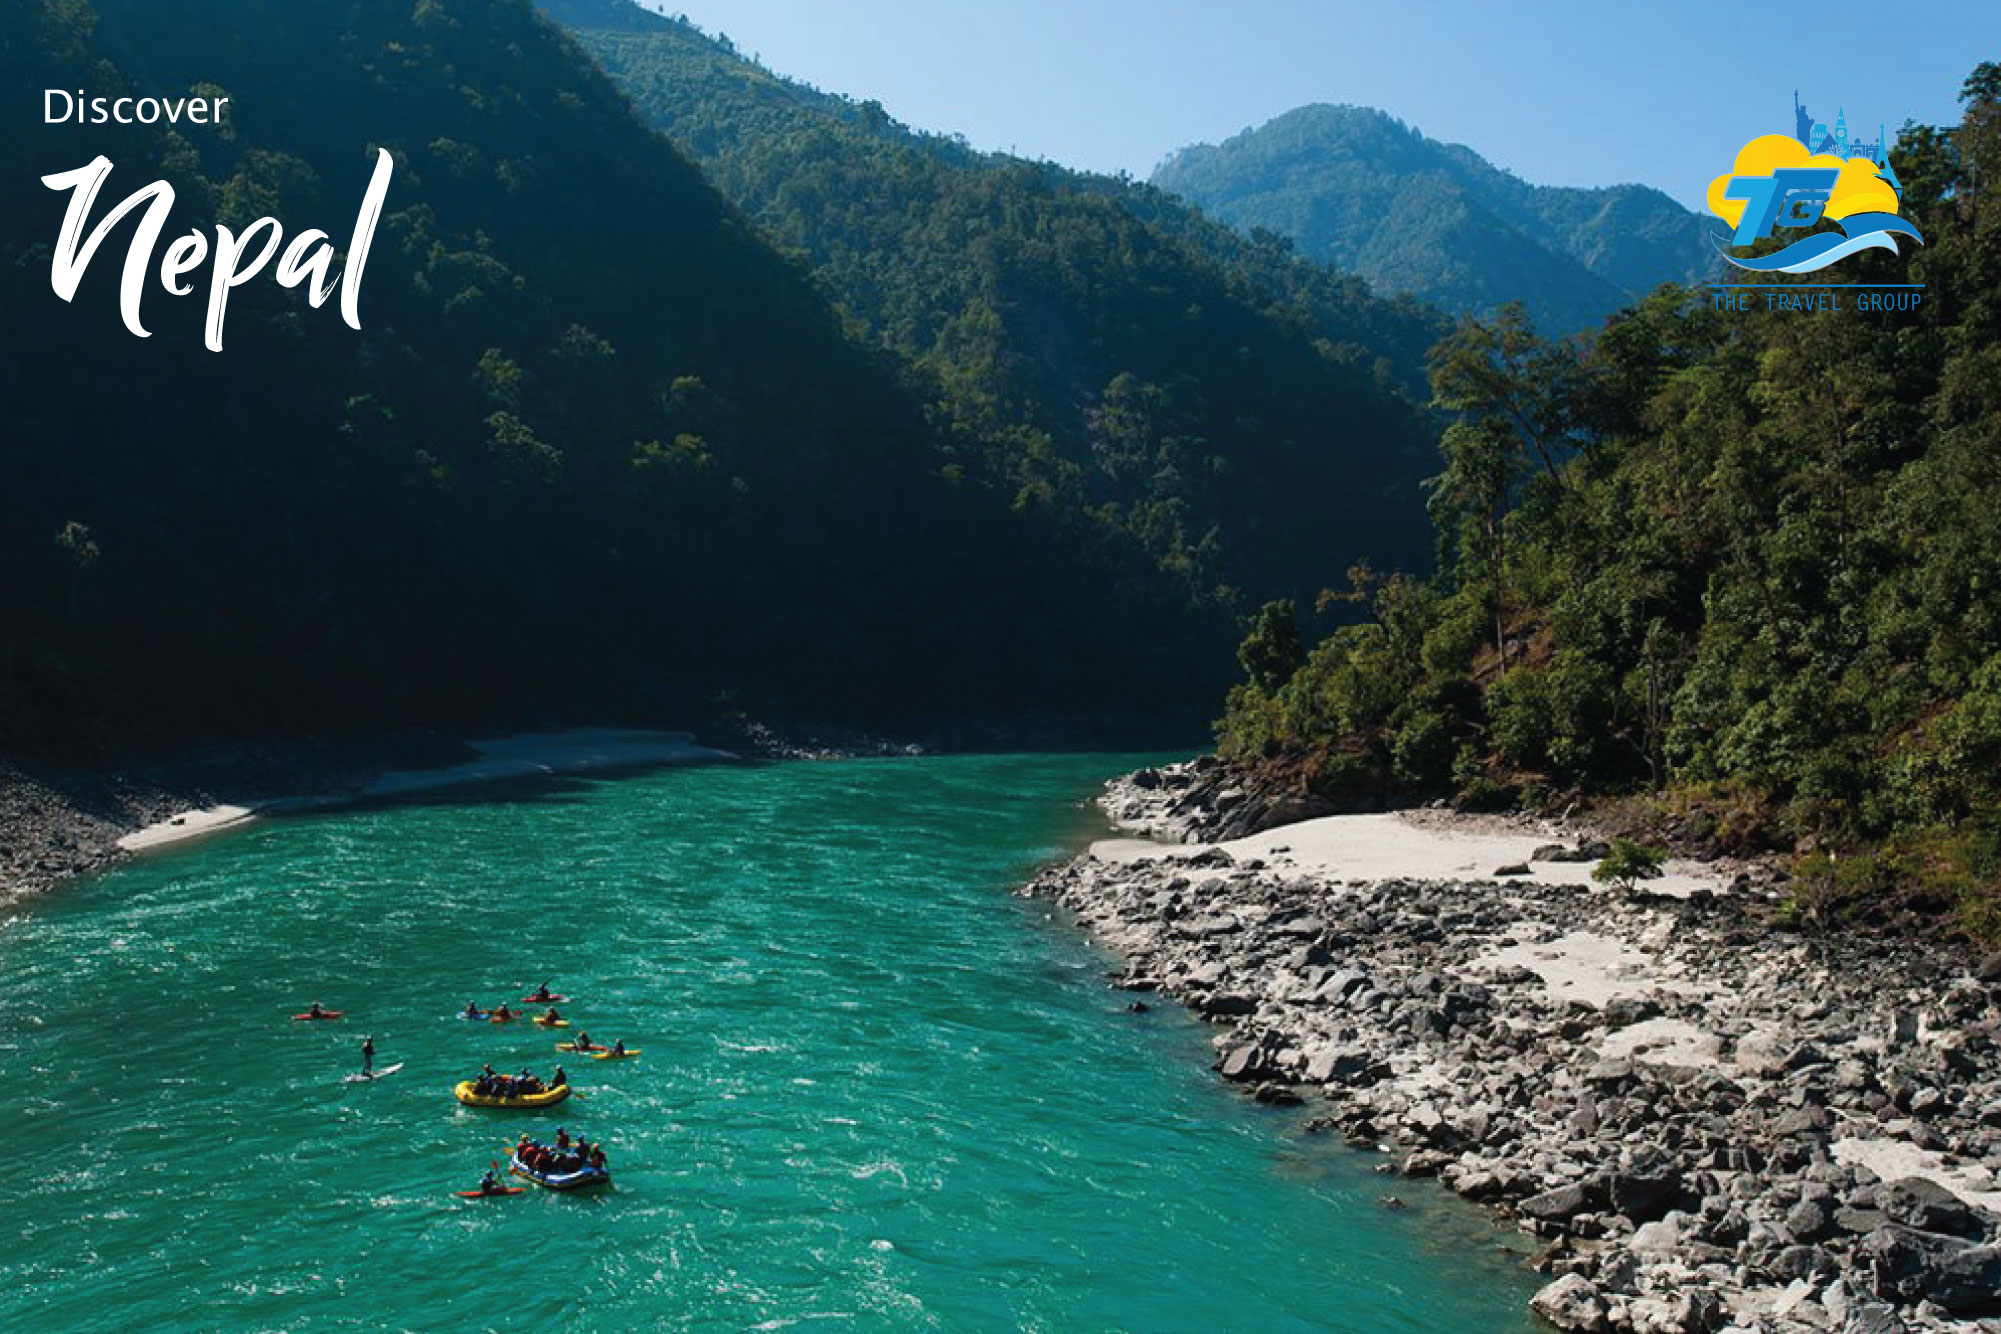 Offer & Packages for Nepal